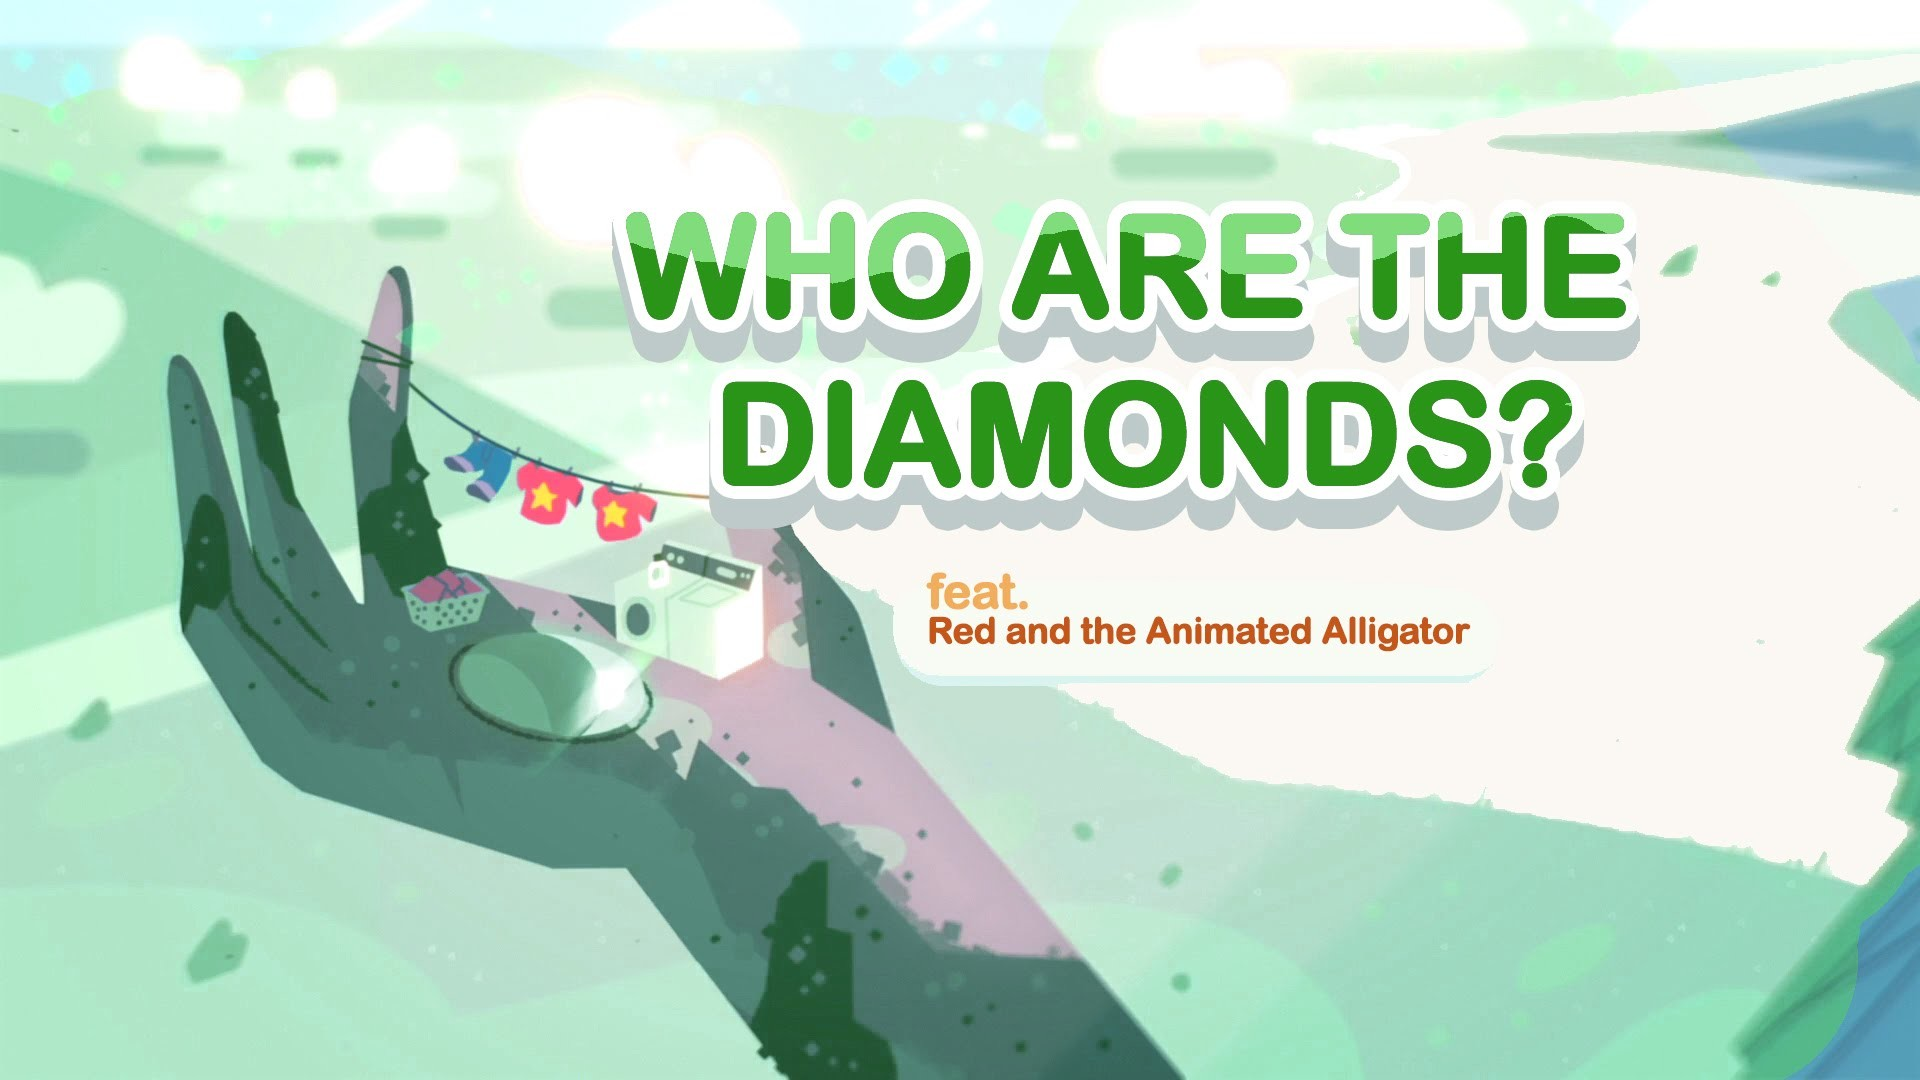 Who are the Diamond Authority? Steven Universe feat. Red and AA